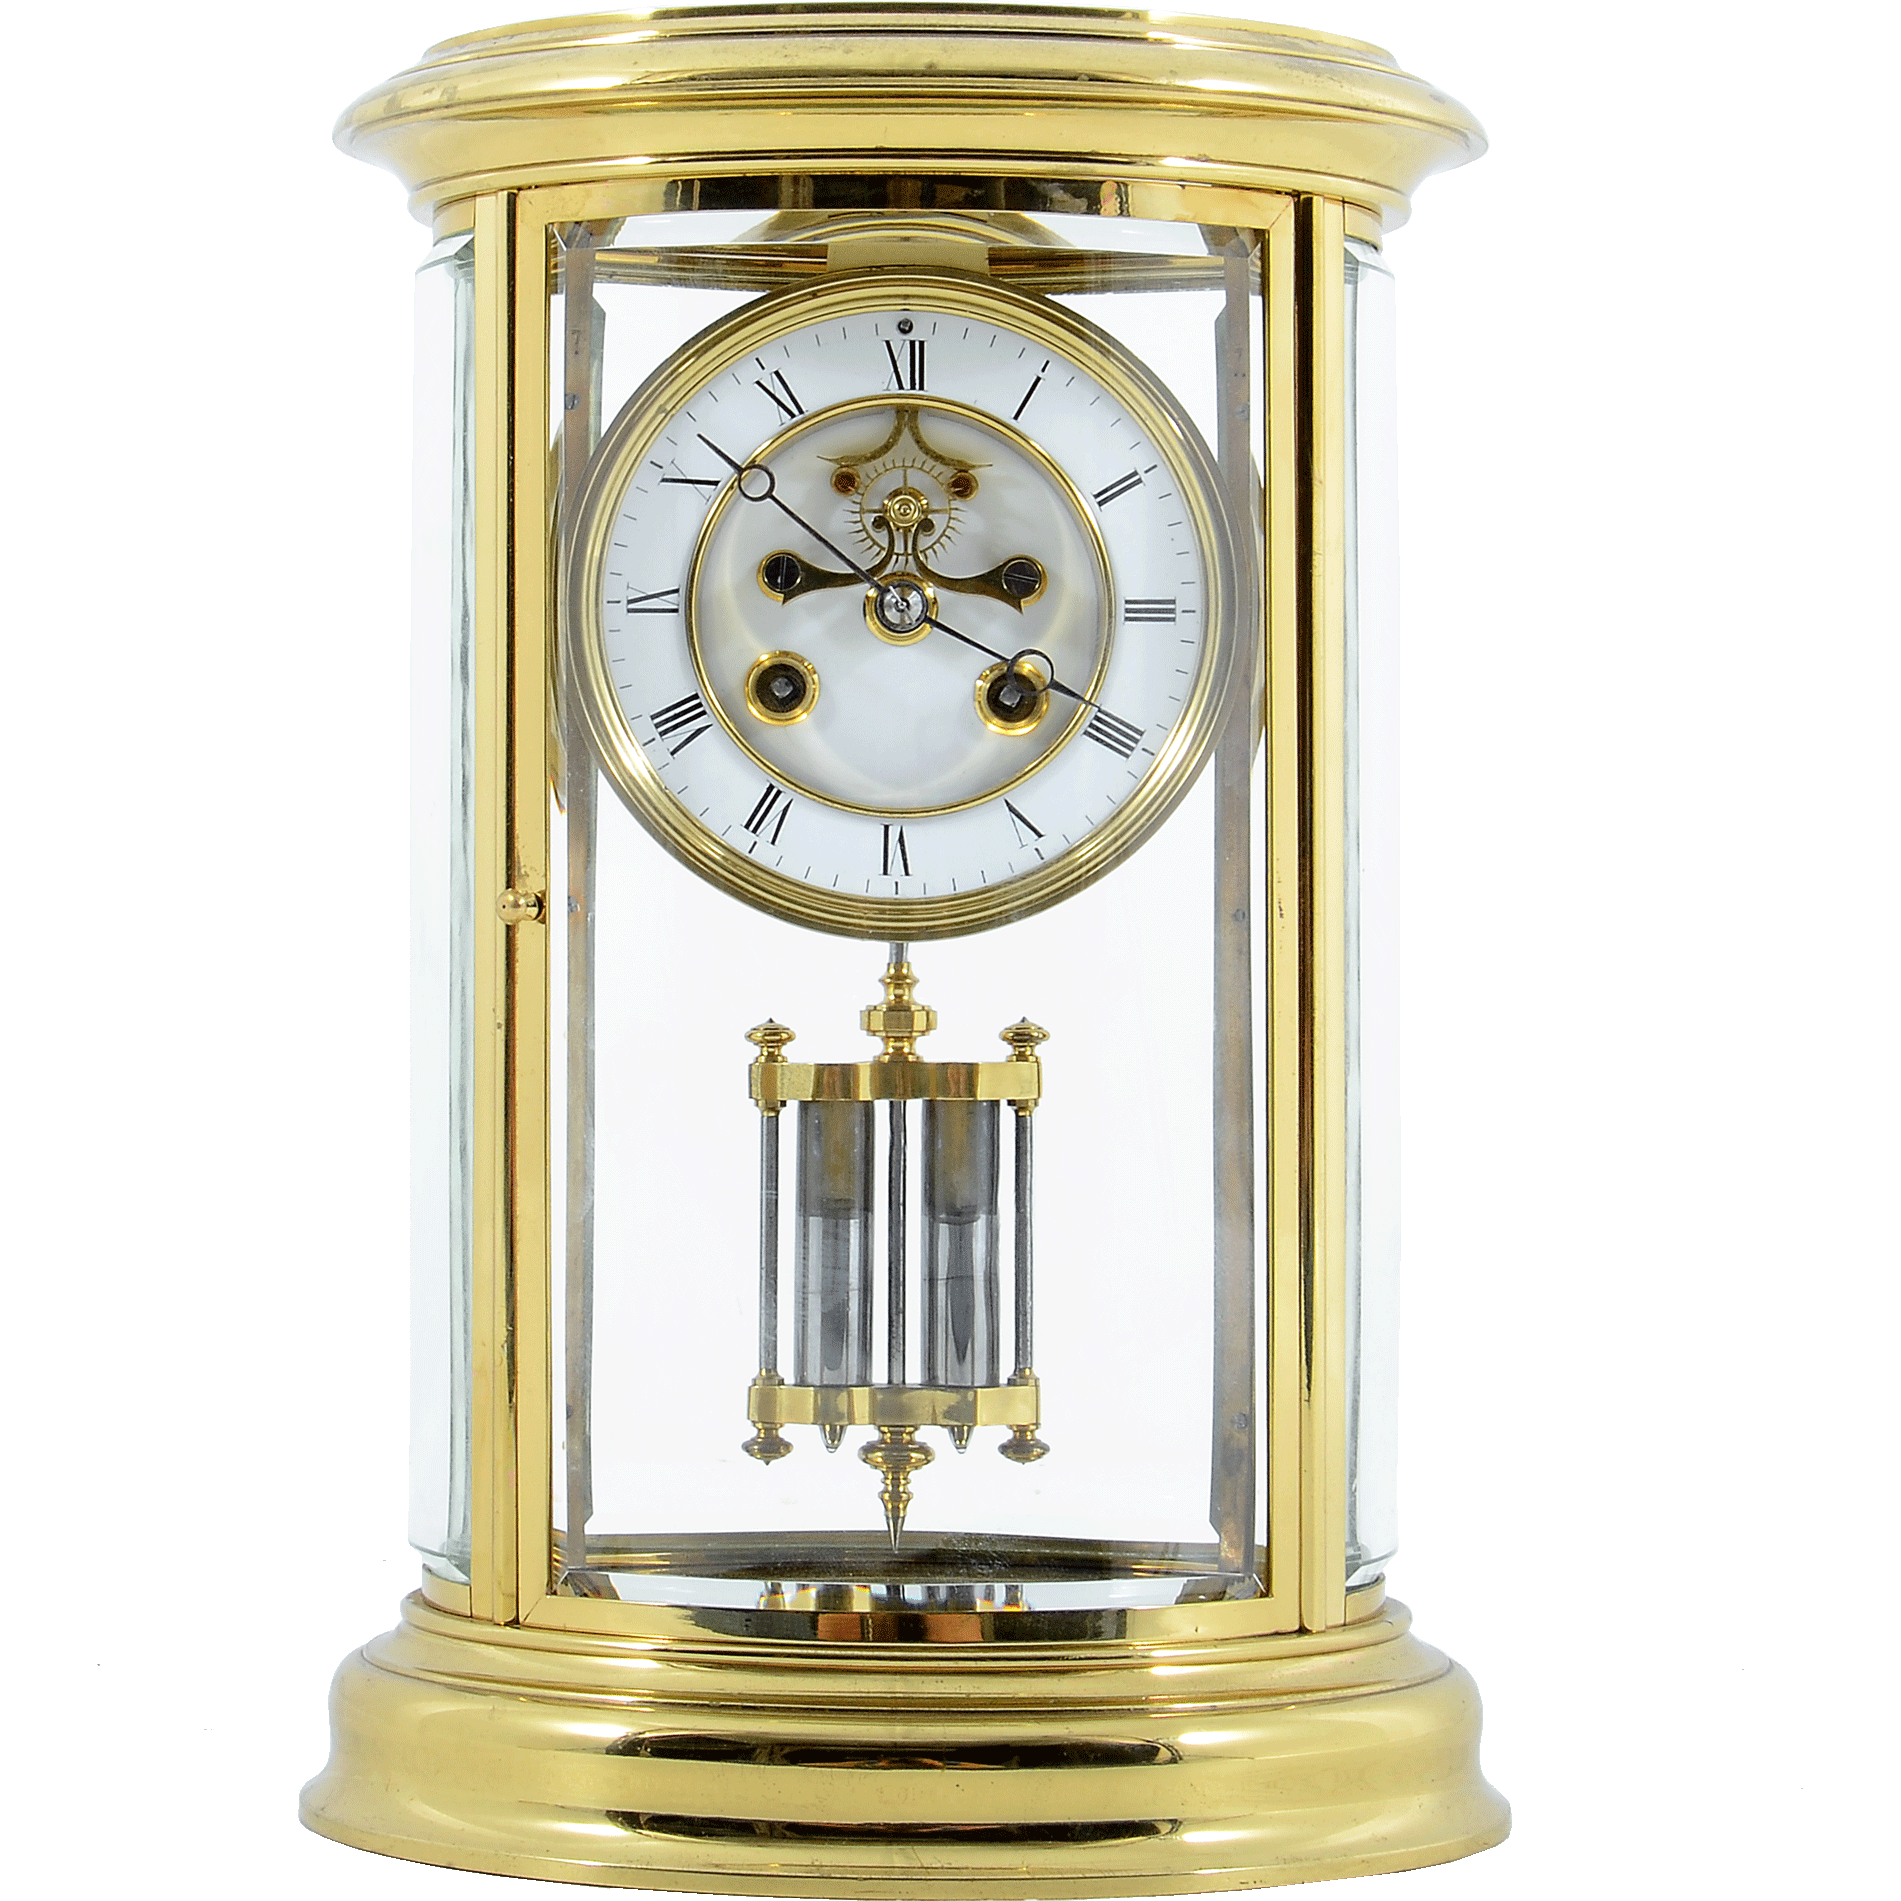 French Oval Crystal Regulator Mantel Clock